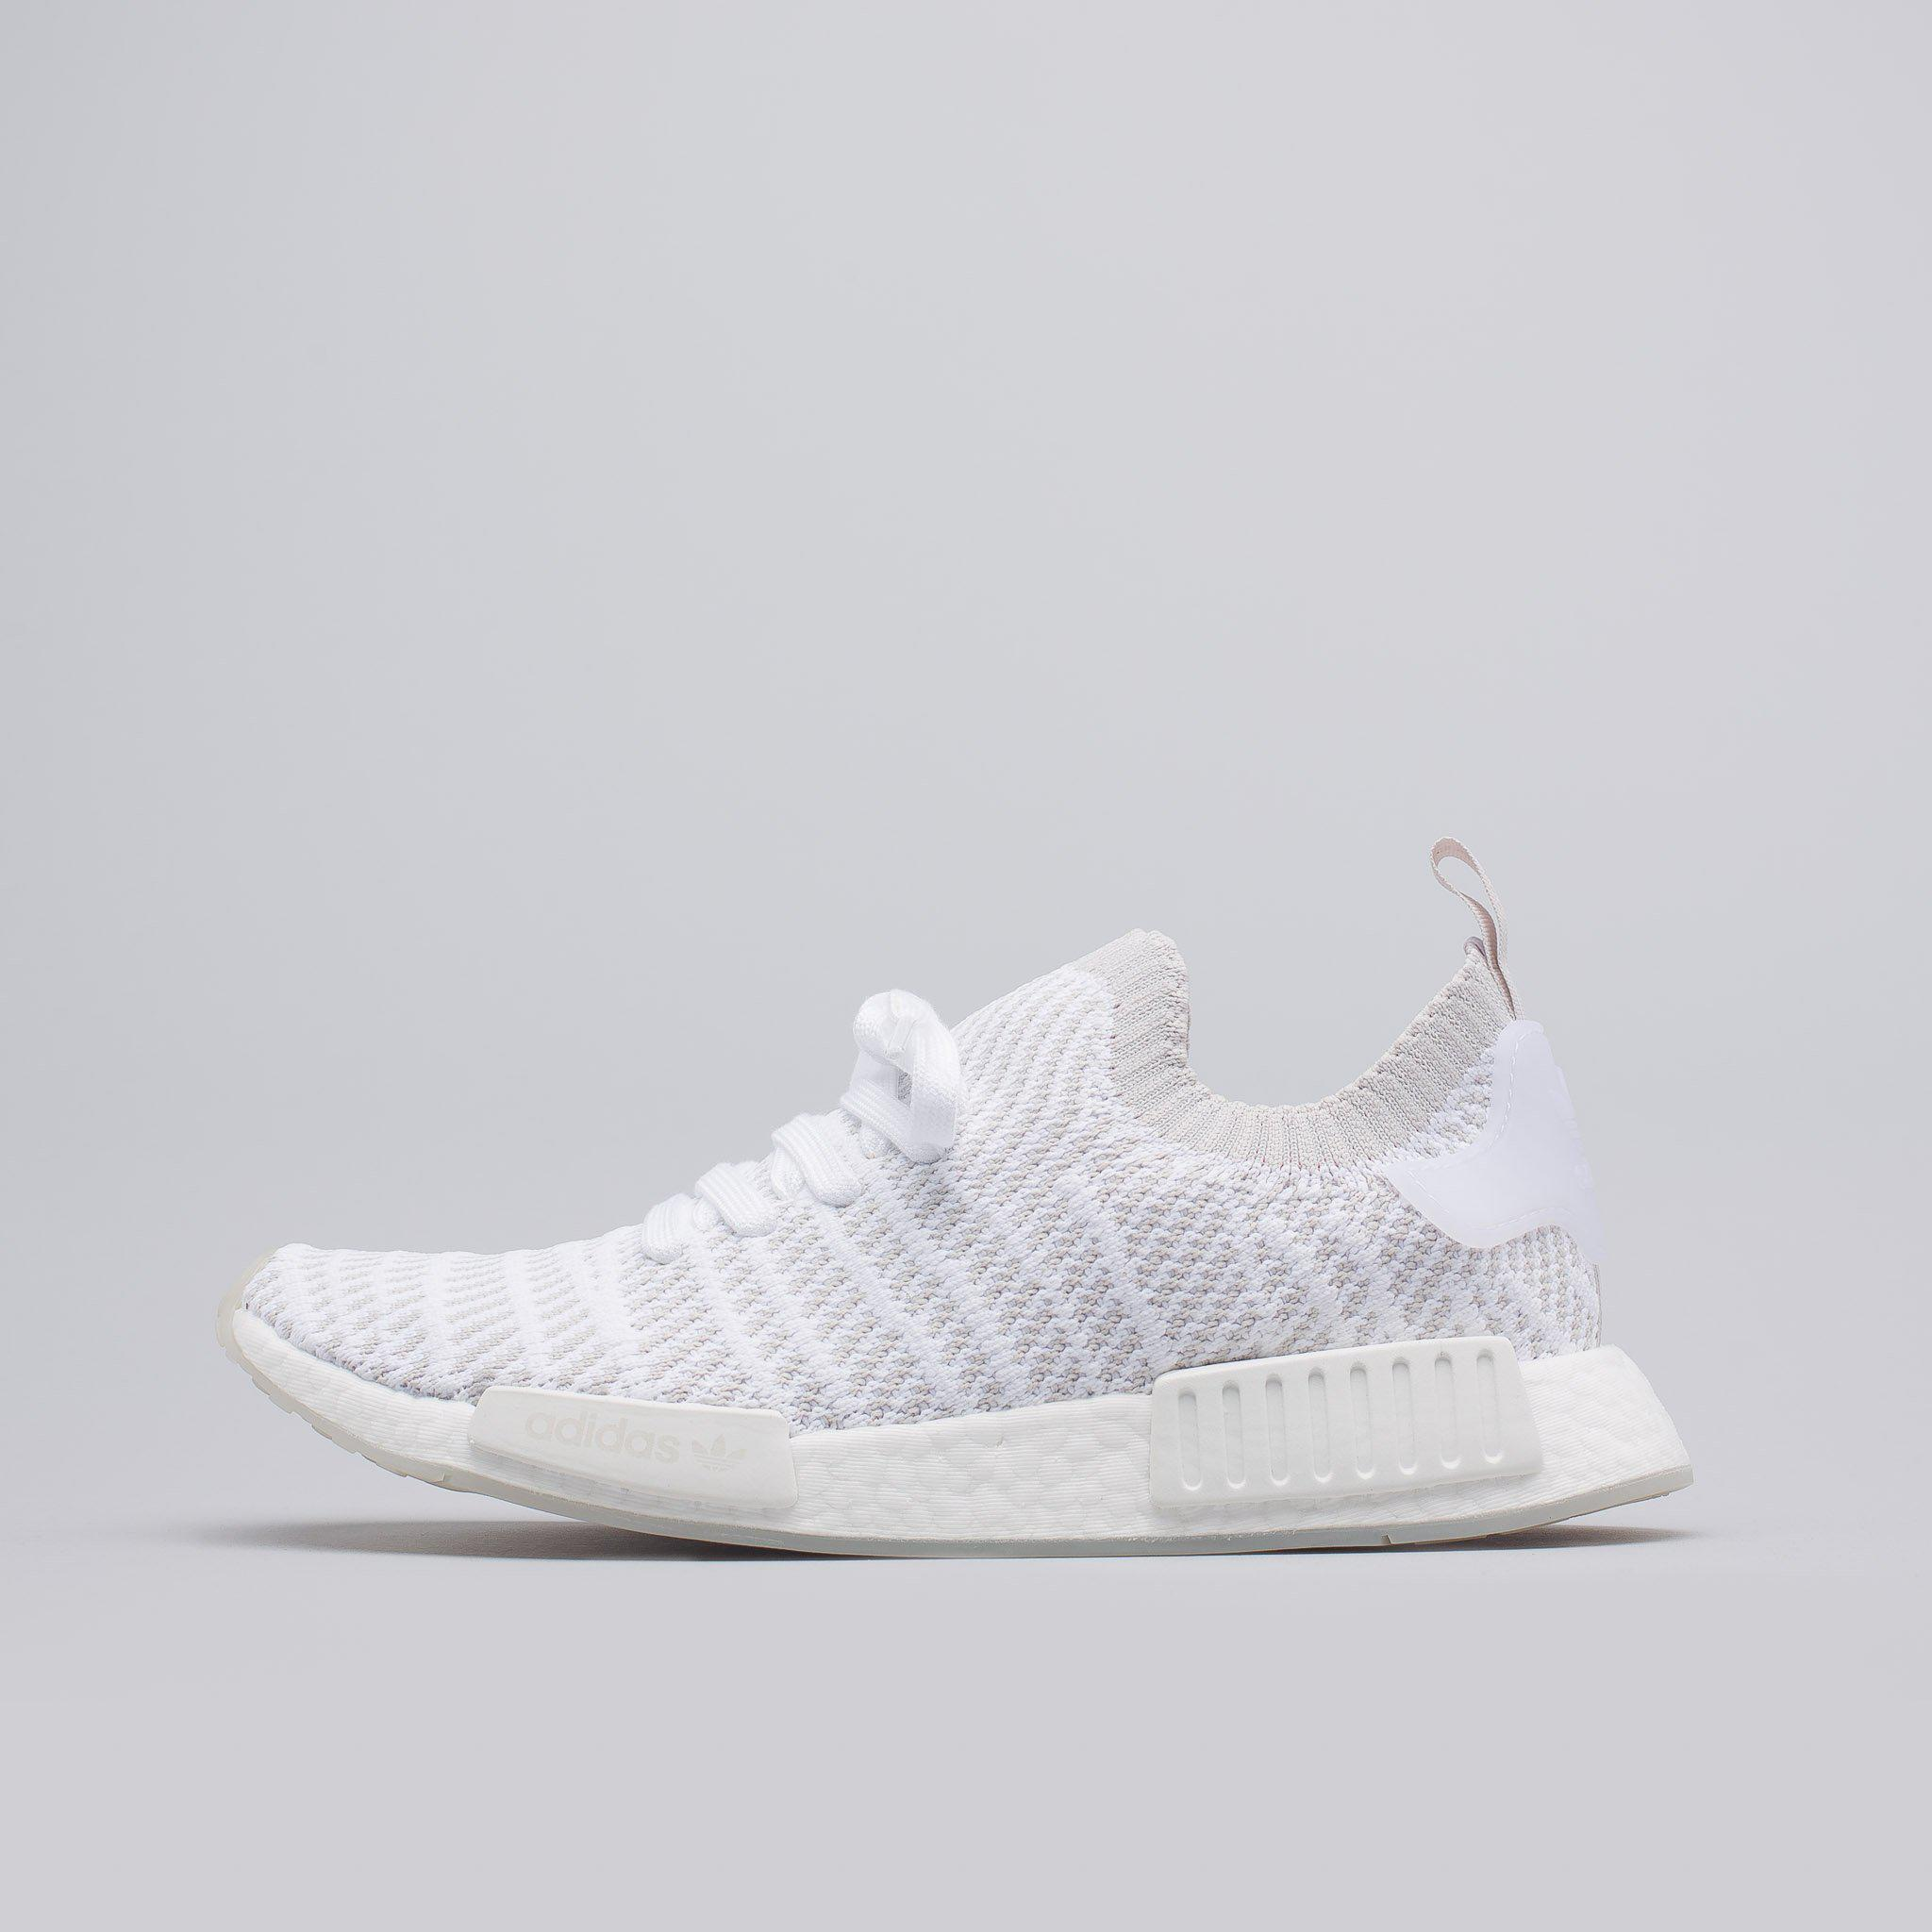 Lyst Adidas Nmd R1 Stlt Primeknit In White In White For Men